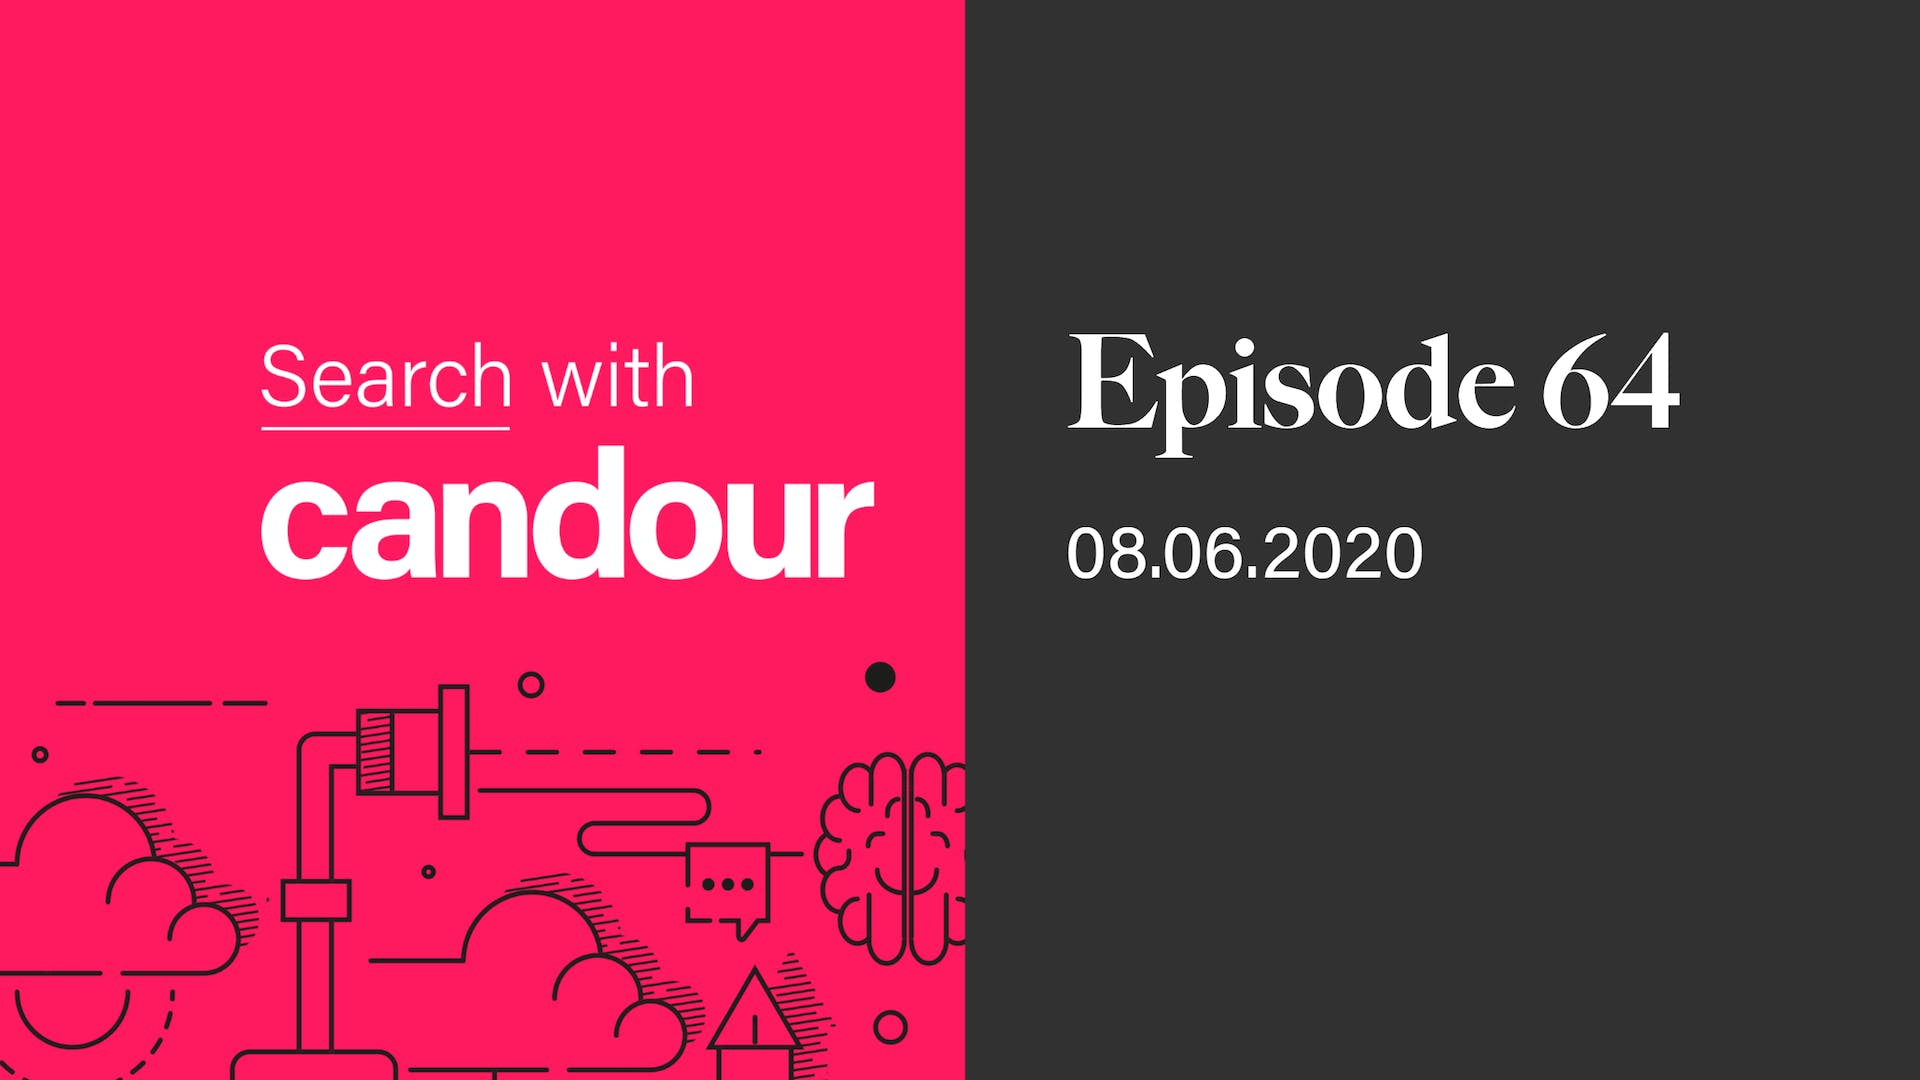 Episode 64 - Search with Candour